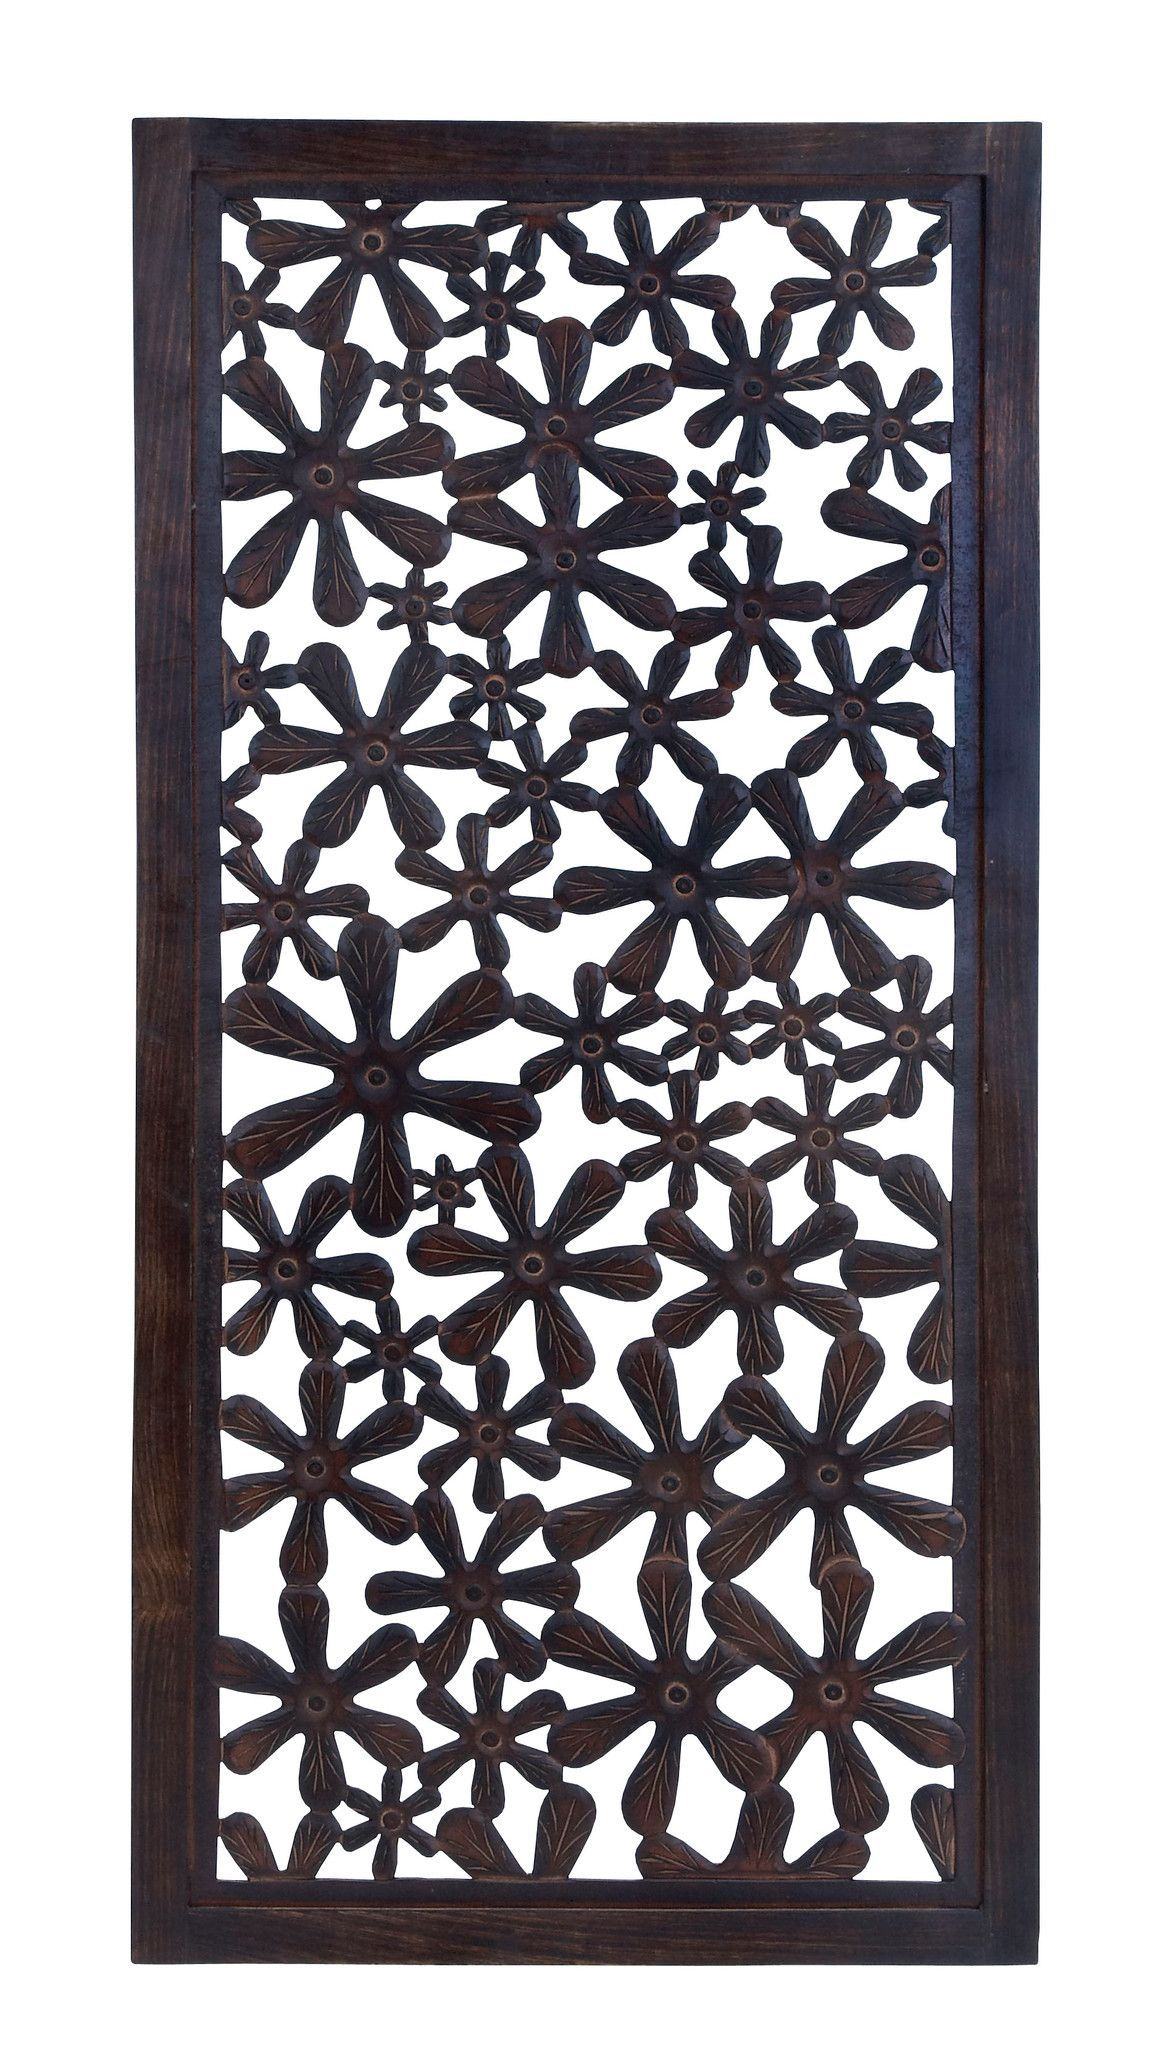 Wood Wall Panel With Trendy Pattern And Glossy Finish